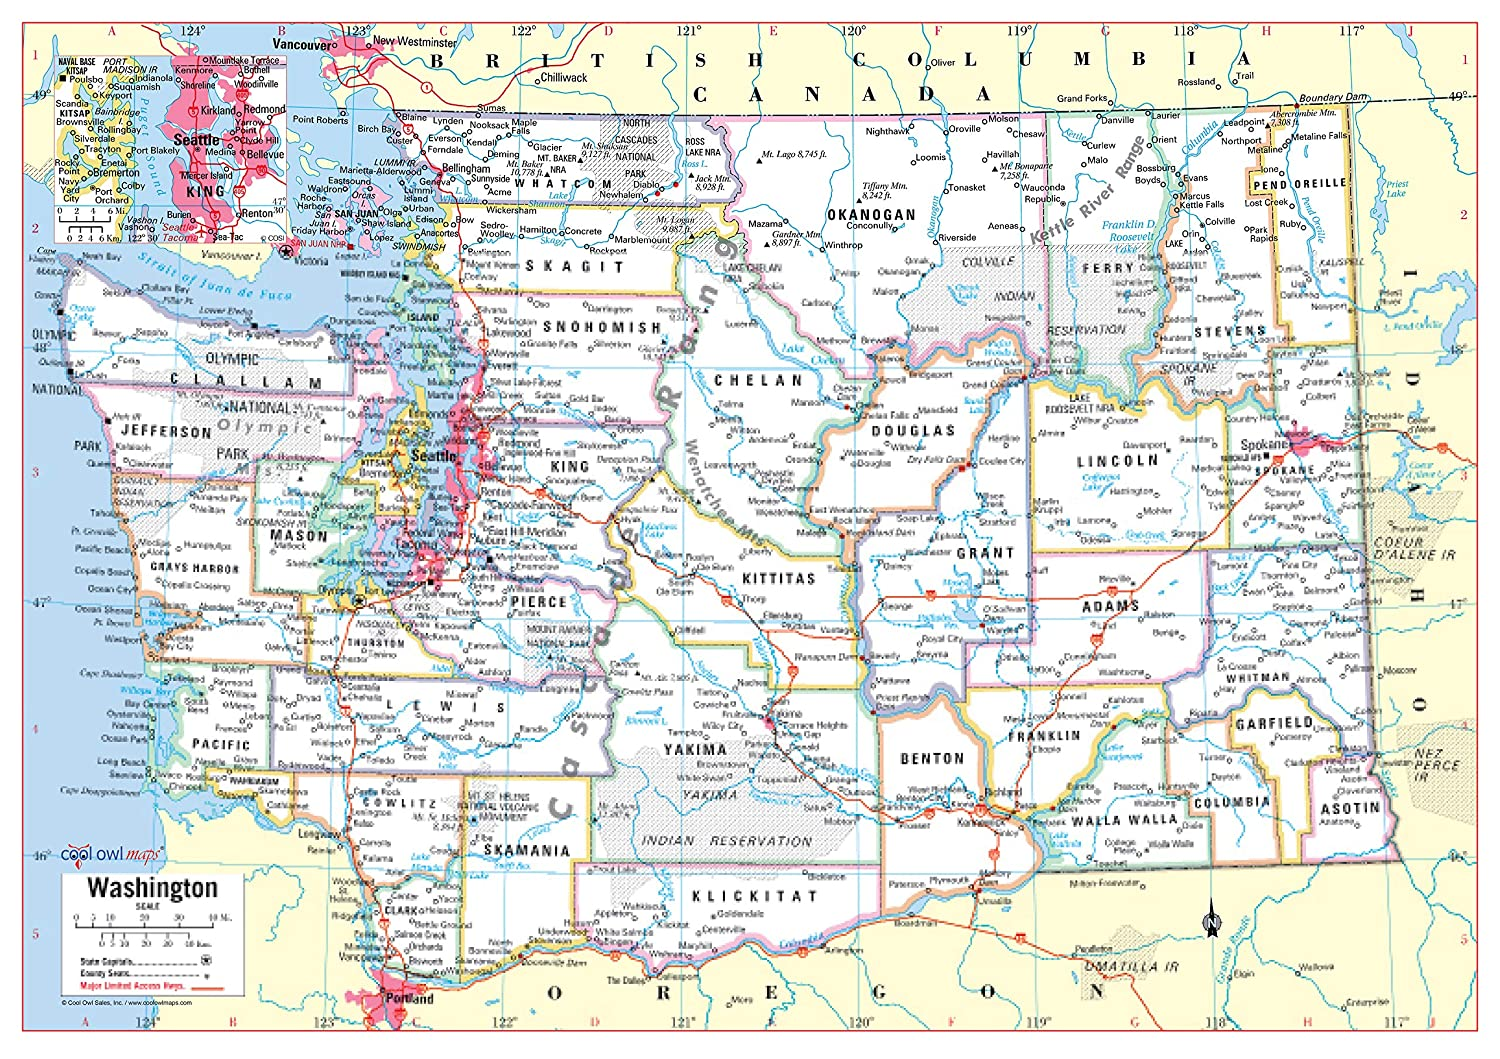 Cool Owl Maps Washington State Wall Map Poster Rolled (Paper 34\